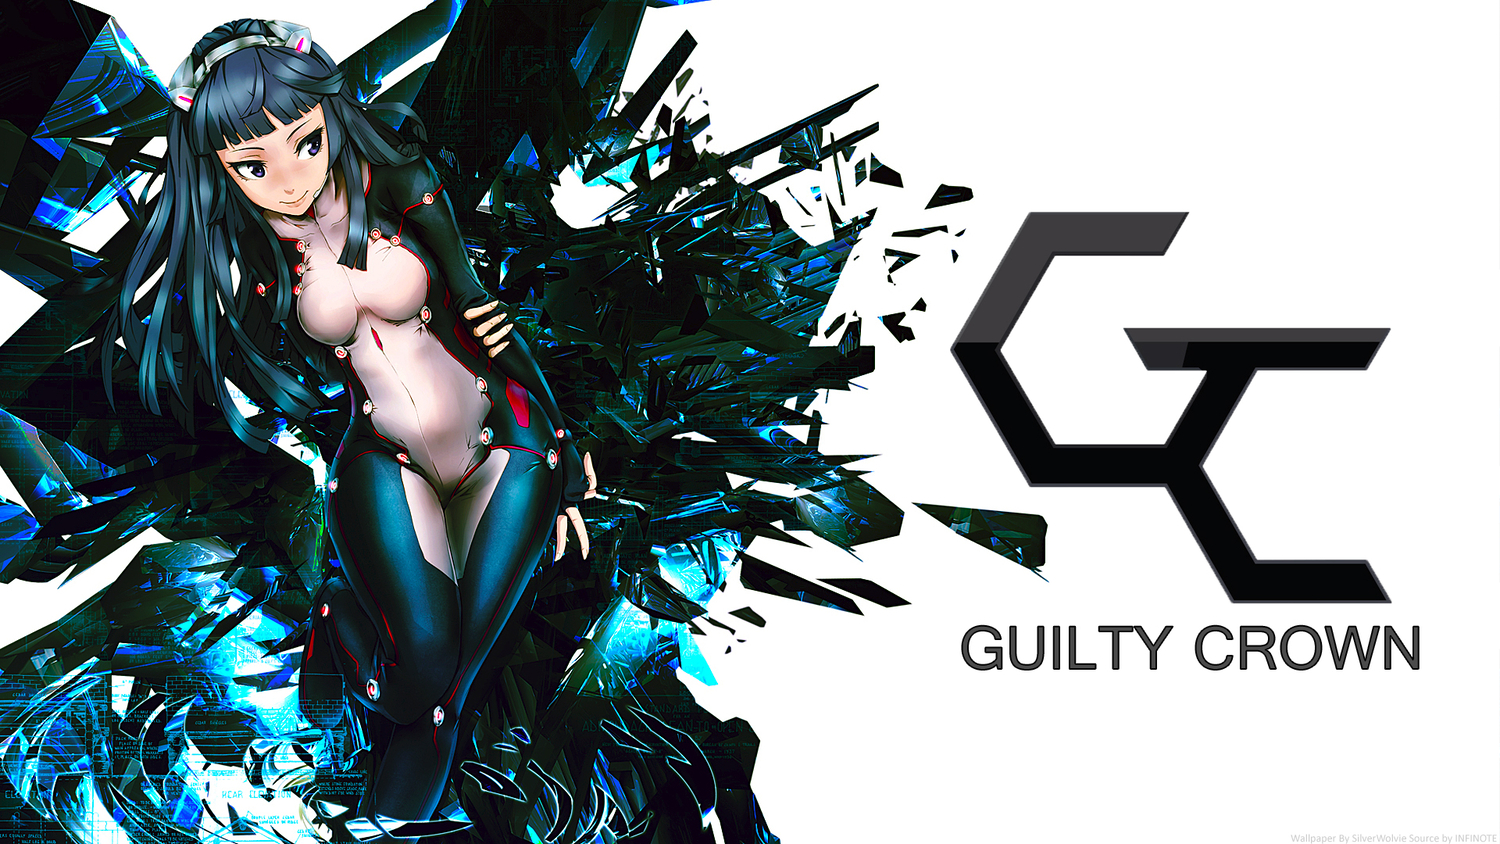 25 Anime Wallpapers Hd Download Free Stunning Hd: Guilty Crown Fond D'écran And Arrière-Plan